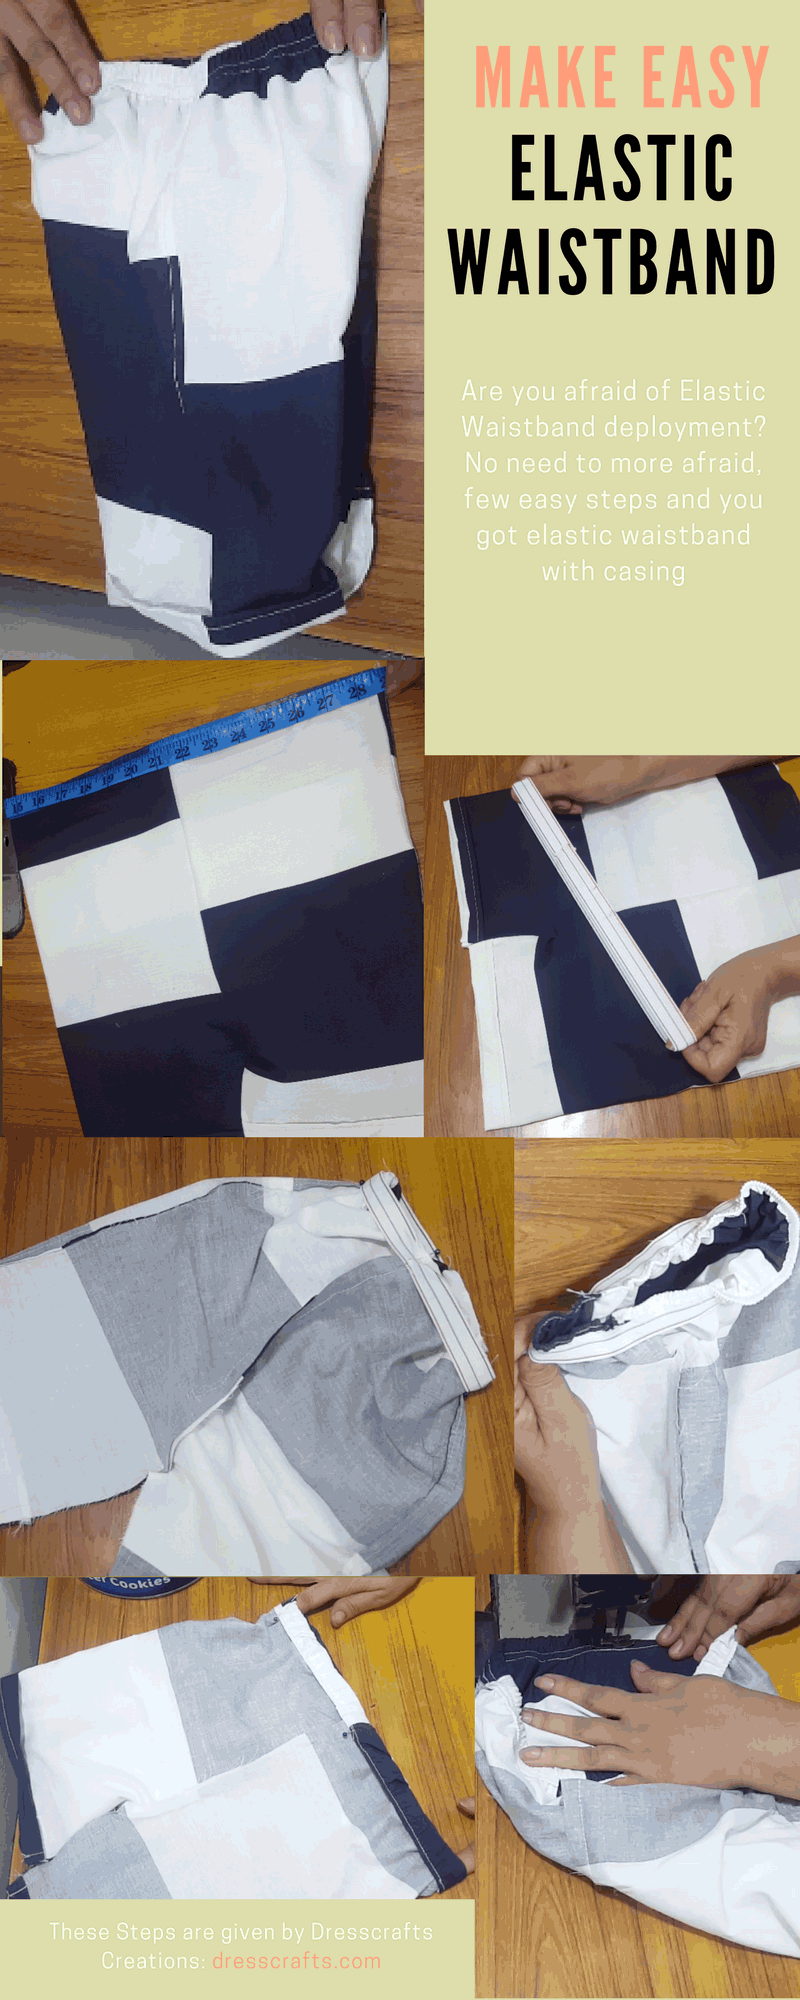 Making of an Elastic Waistband